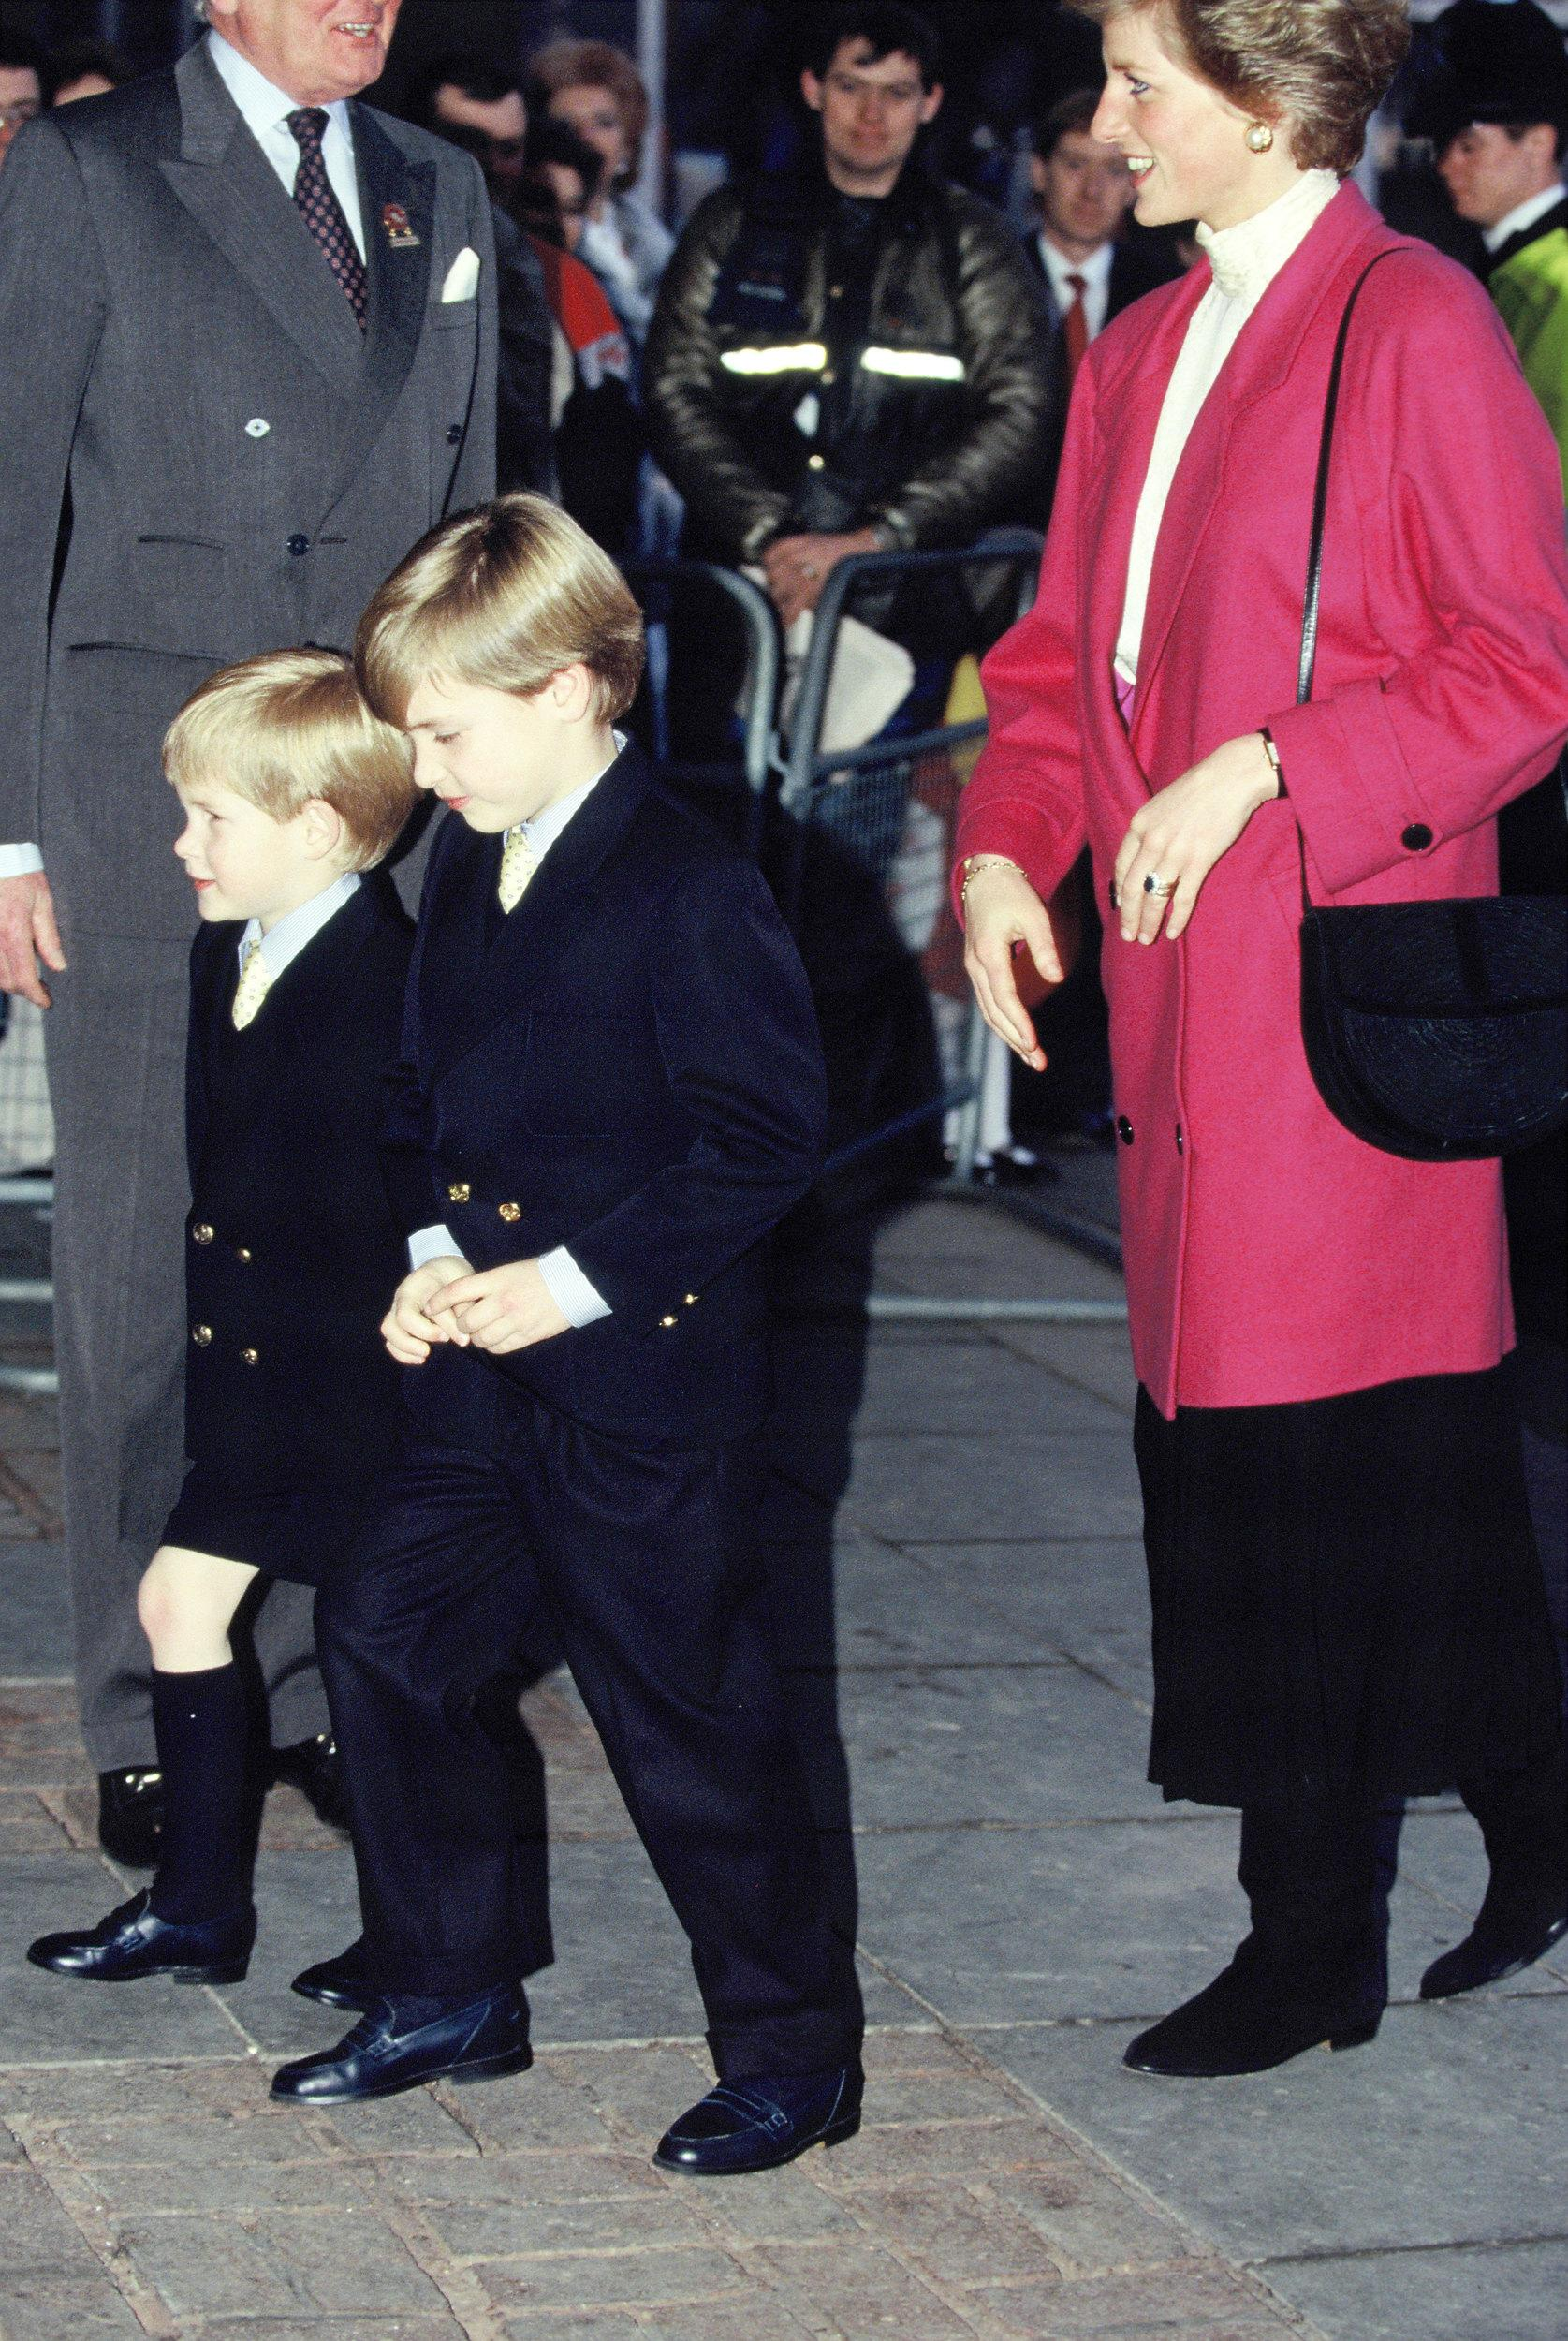 Diana, Princess of Wales, with her sons Prince Harry (L) and Prince William in 1988 ca. in London, England.  (Photo by Georges De Keerle/Getty Images)